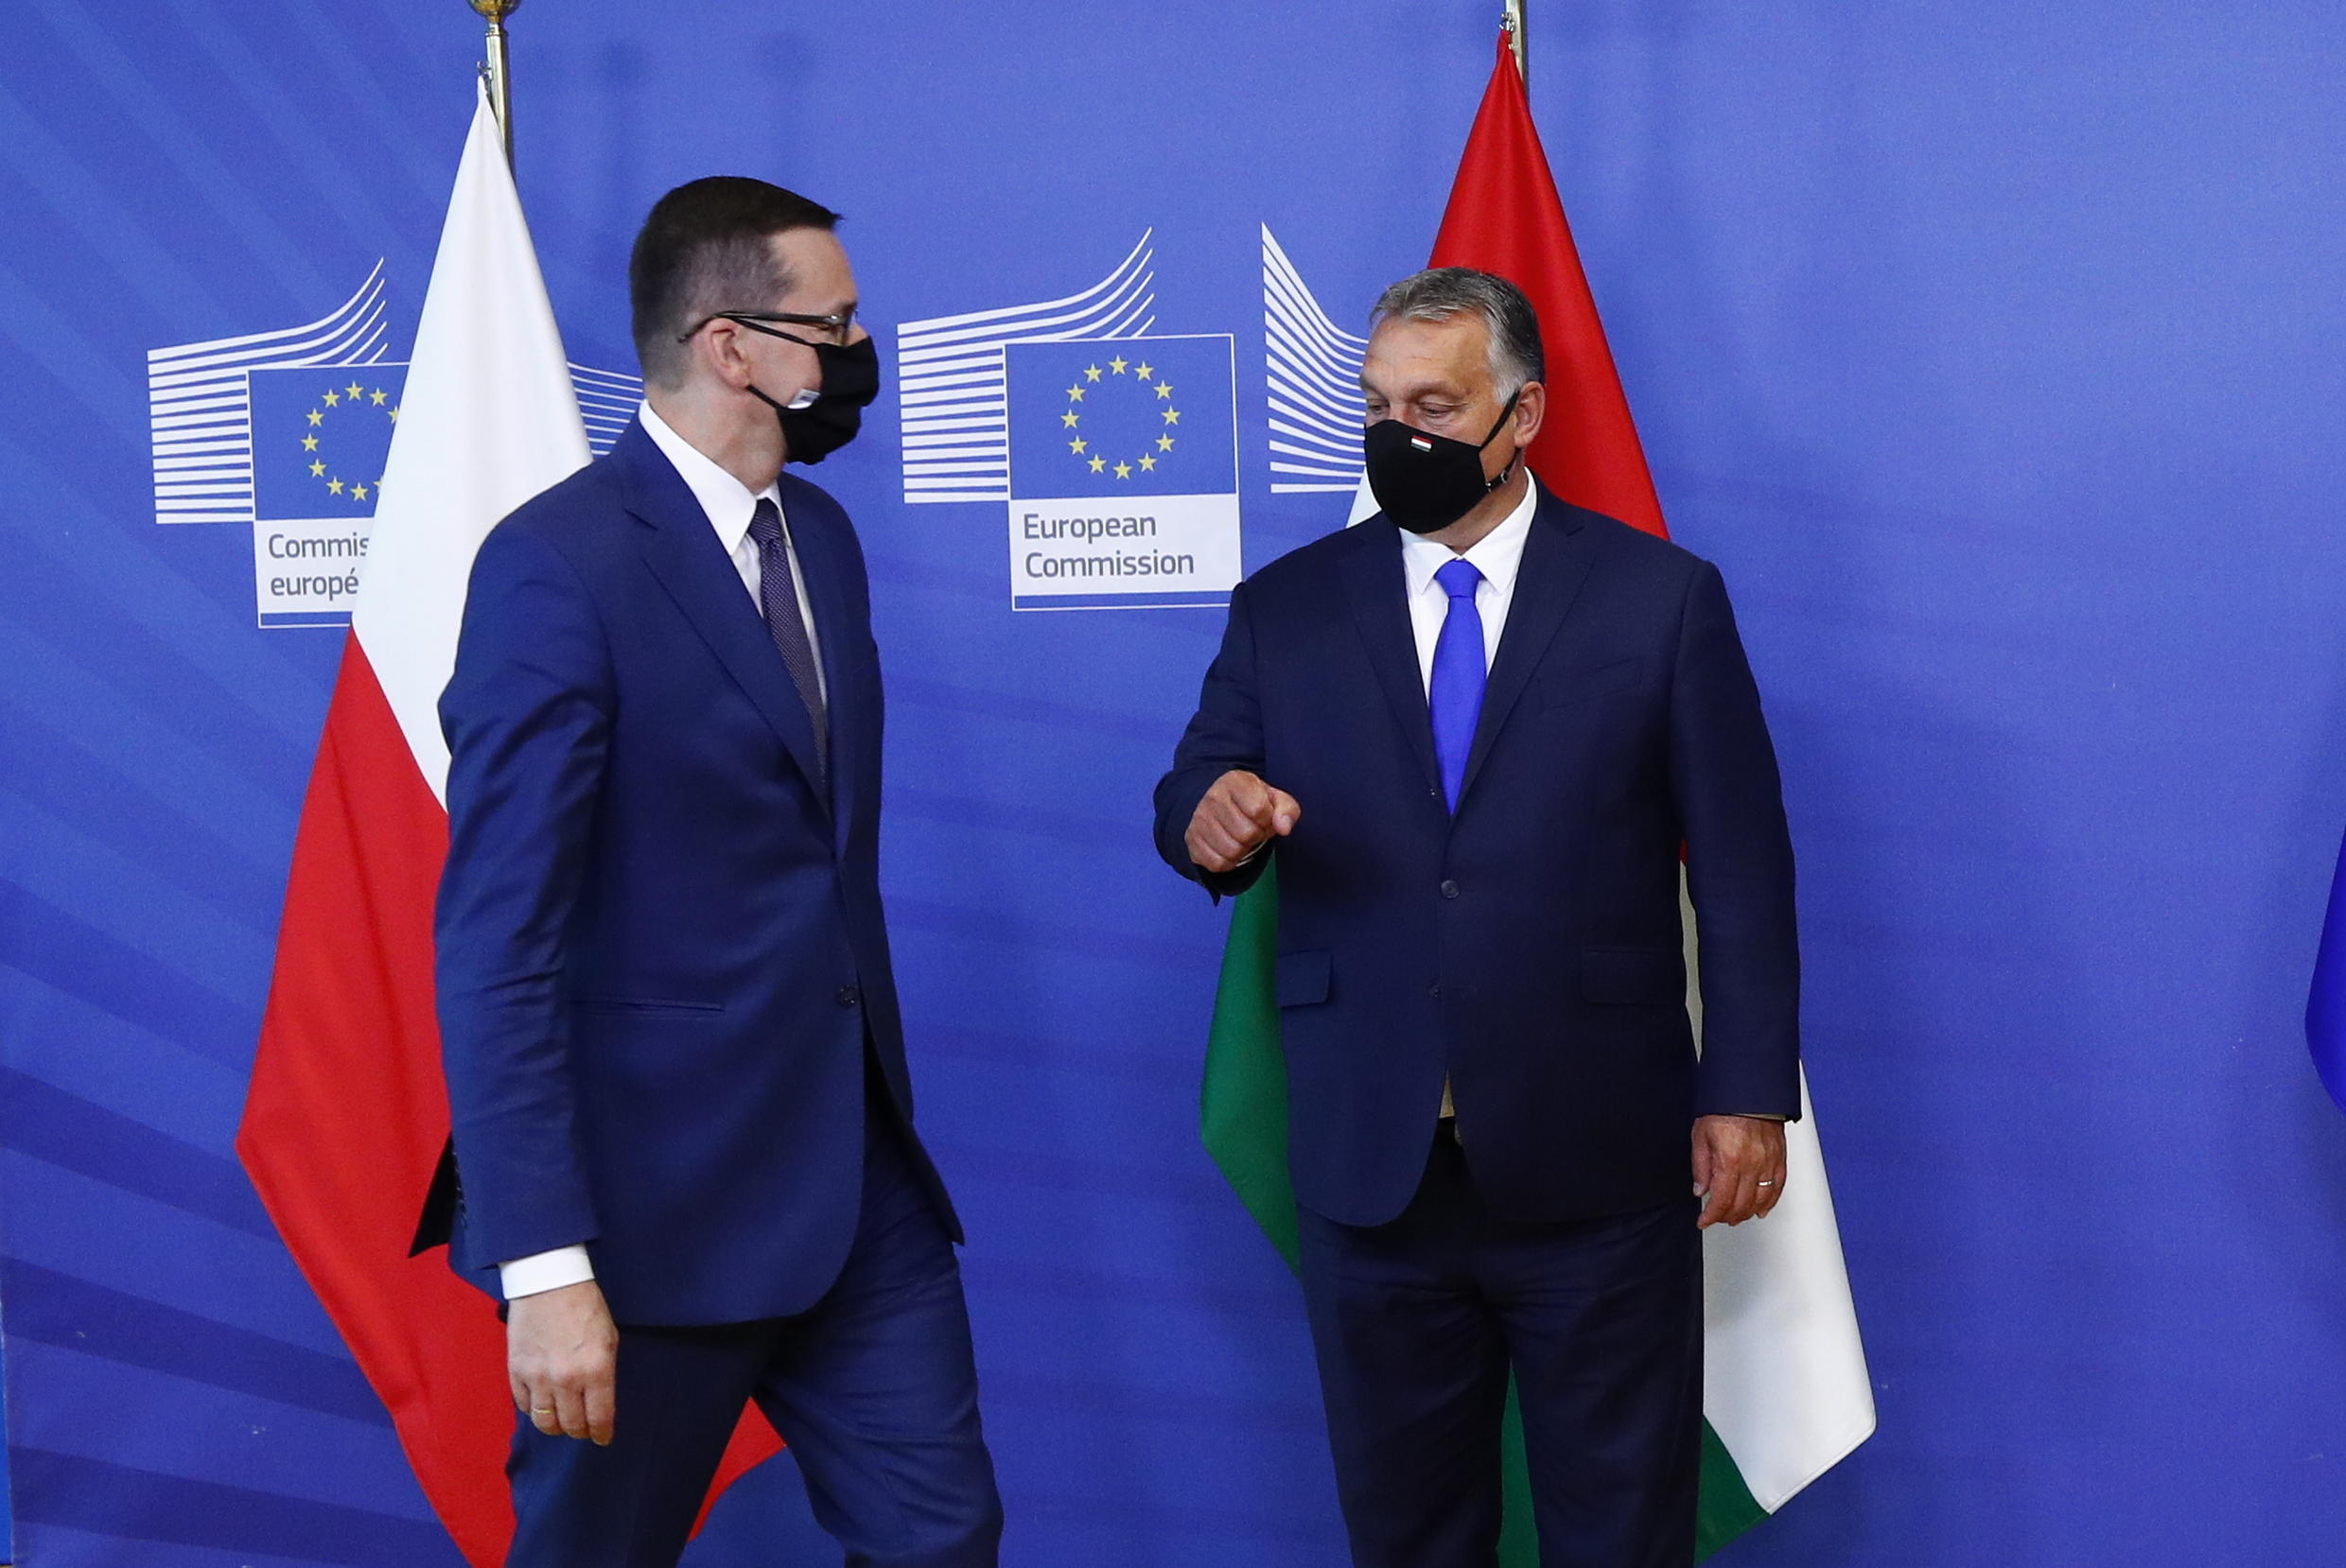 Poland's Prime Minister Mateusz Morawiecki (L) and Hungary's Prime Minister Viktor Orban have accused the EU of mounting a power grab over efforts to increase oversight over the rule of law